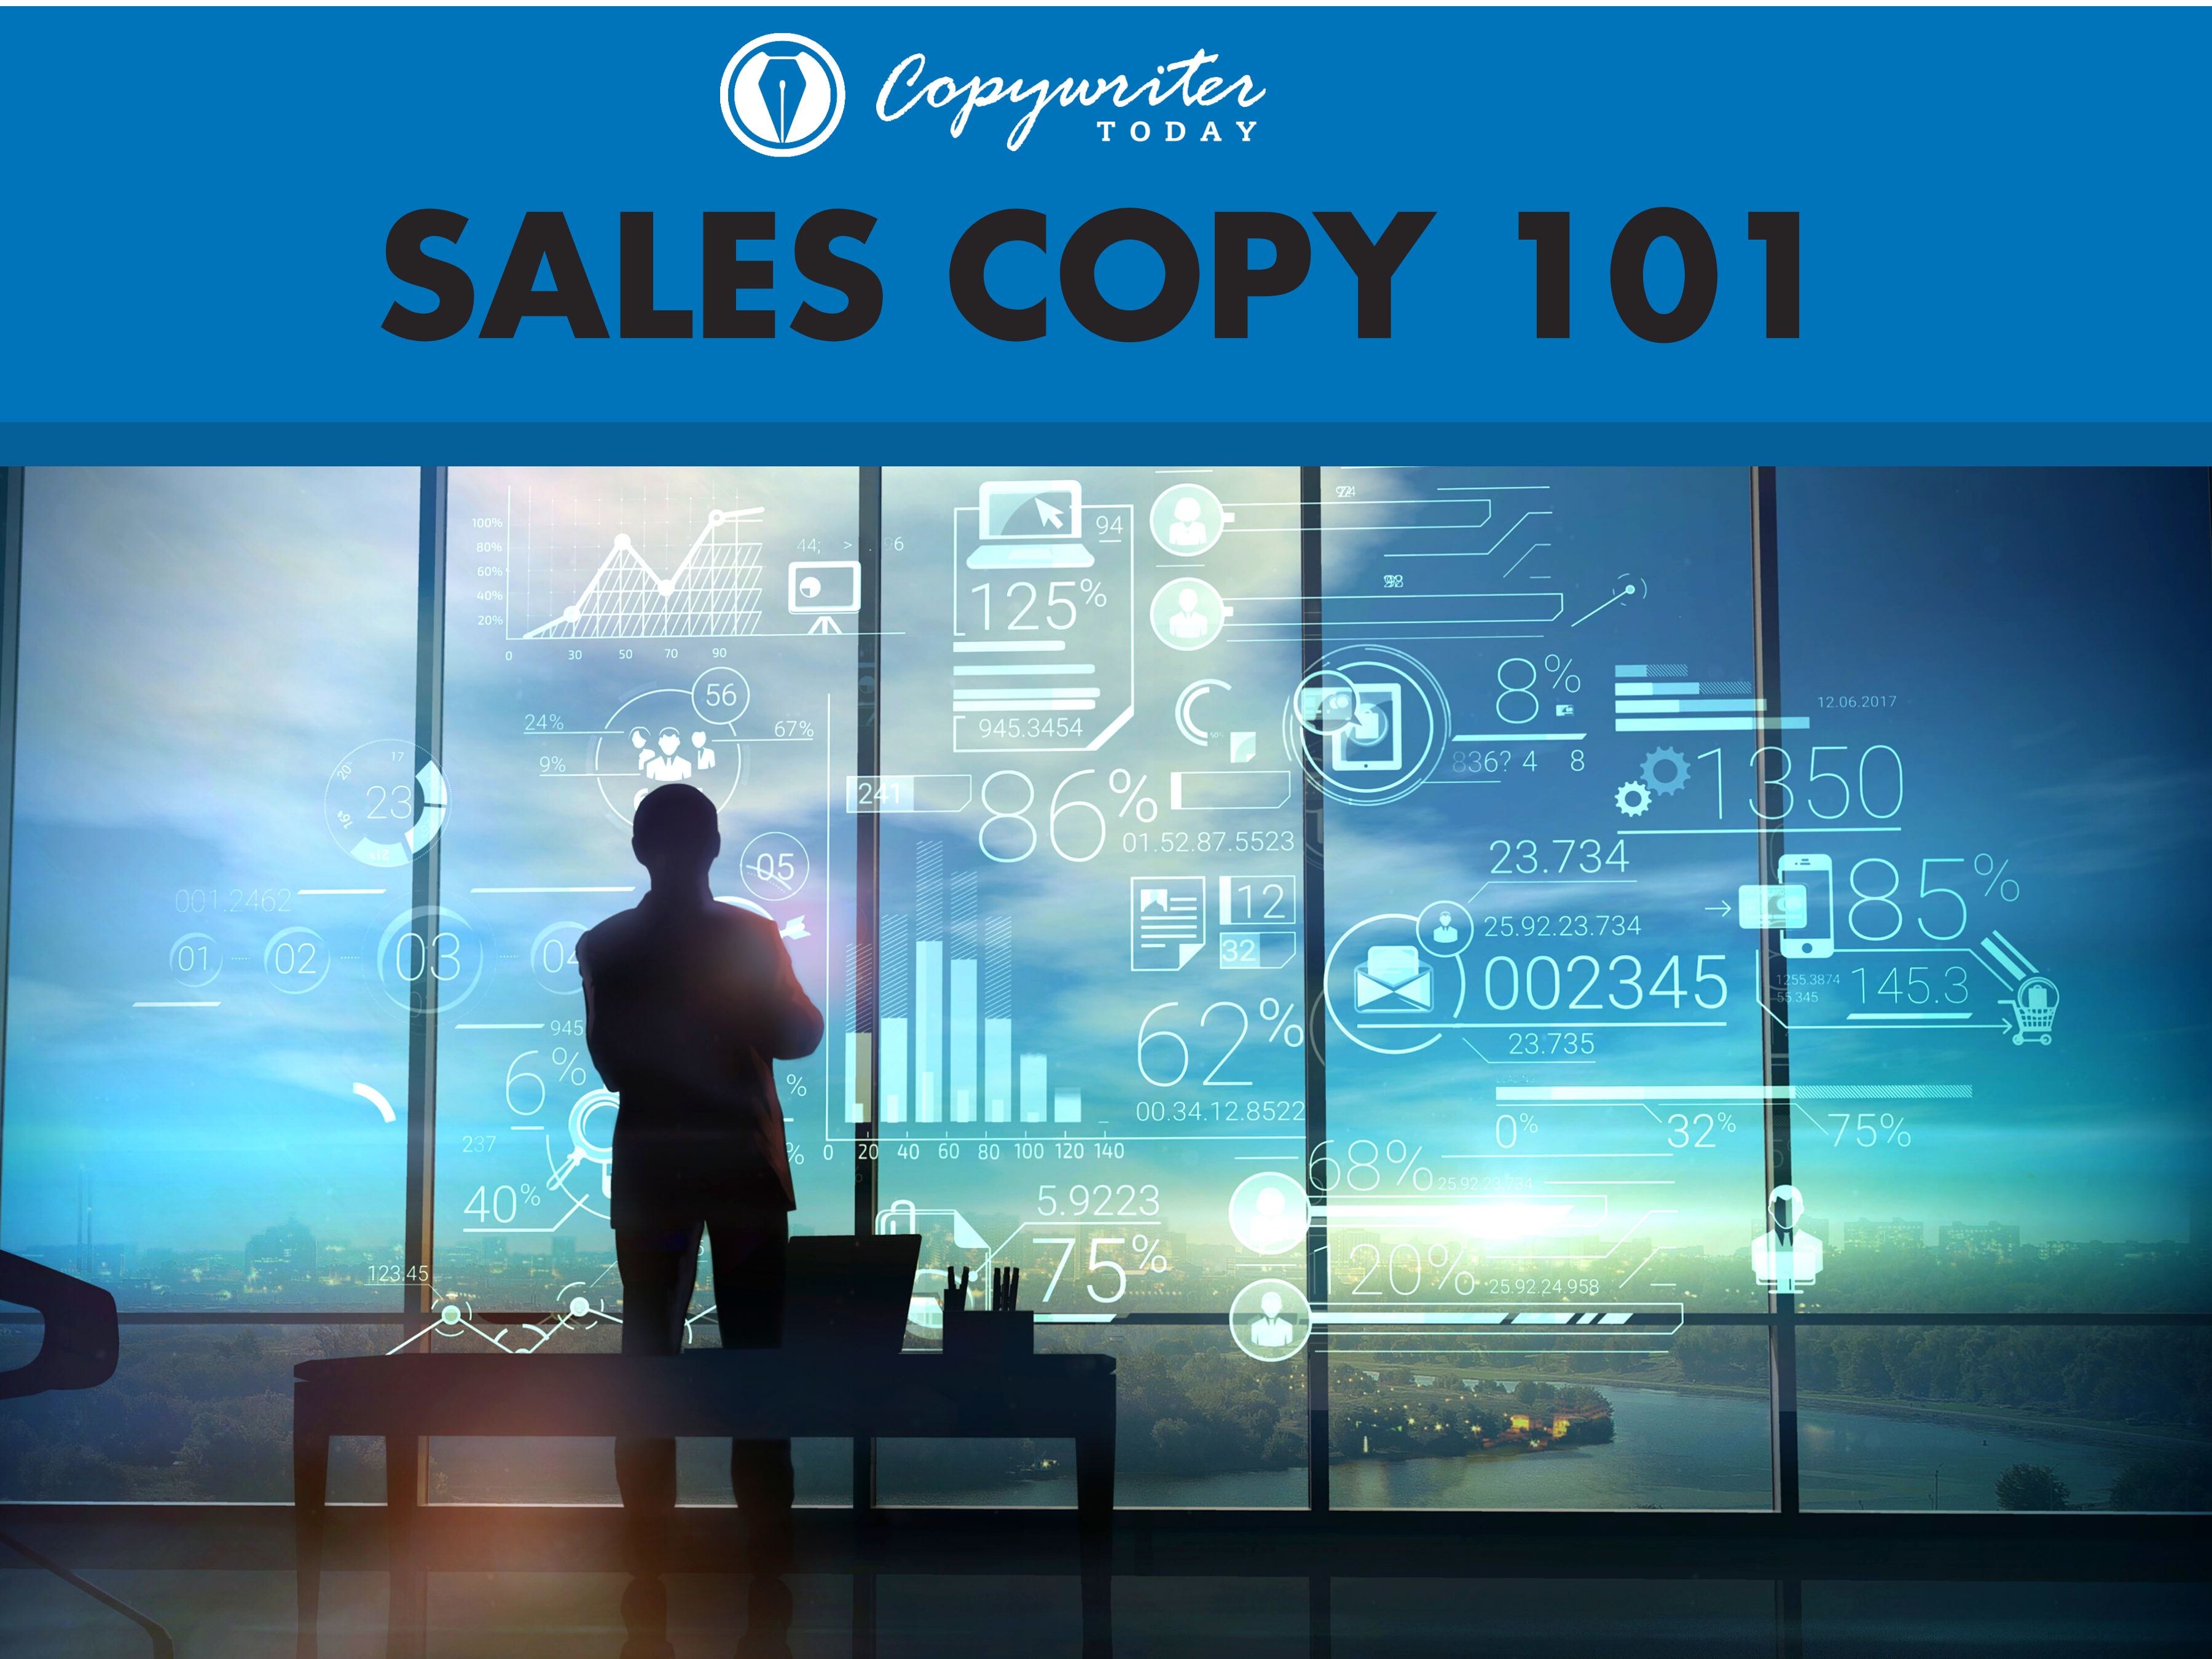 What is Sales Copy